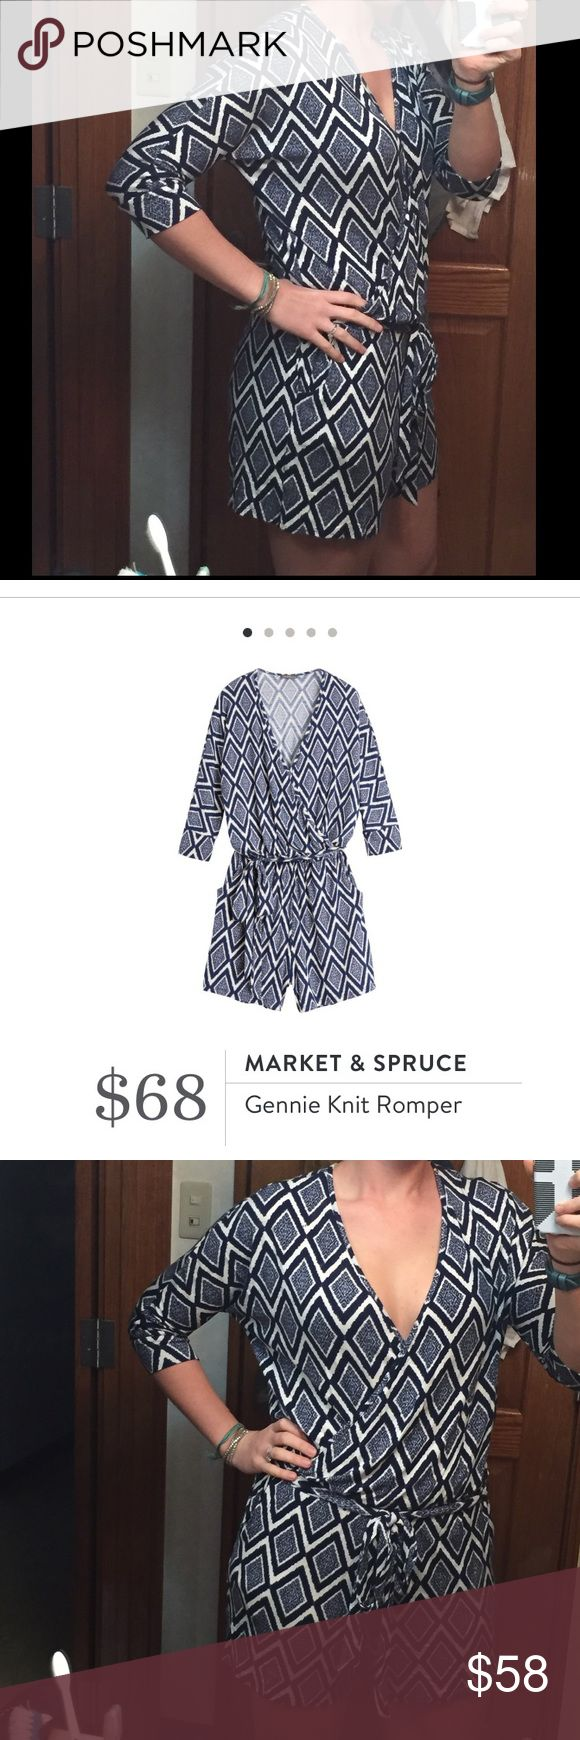 Market & Spruce Romper Blue and white NWT romper from my last Stitch Fix. This is such a cute, comfy, and easy outfit, since it's all in one! Very soft material, lots of stretch to it. I just have too many similar rompers to this. Paid Stitch Fix's price for this. Feel free to make me an offer or bundle to save! Market & Spruce Other